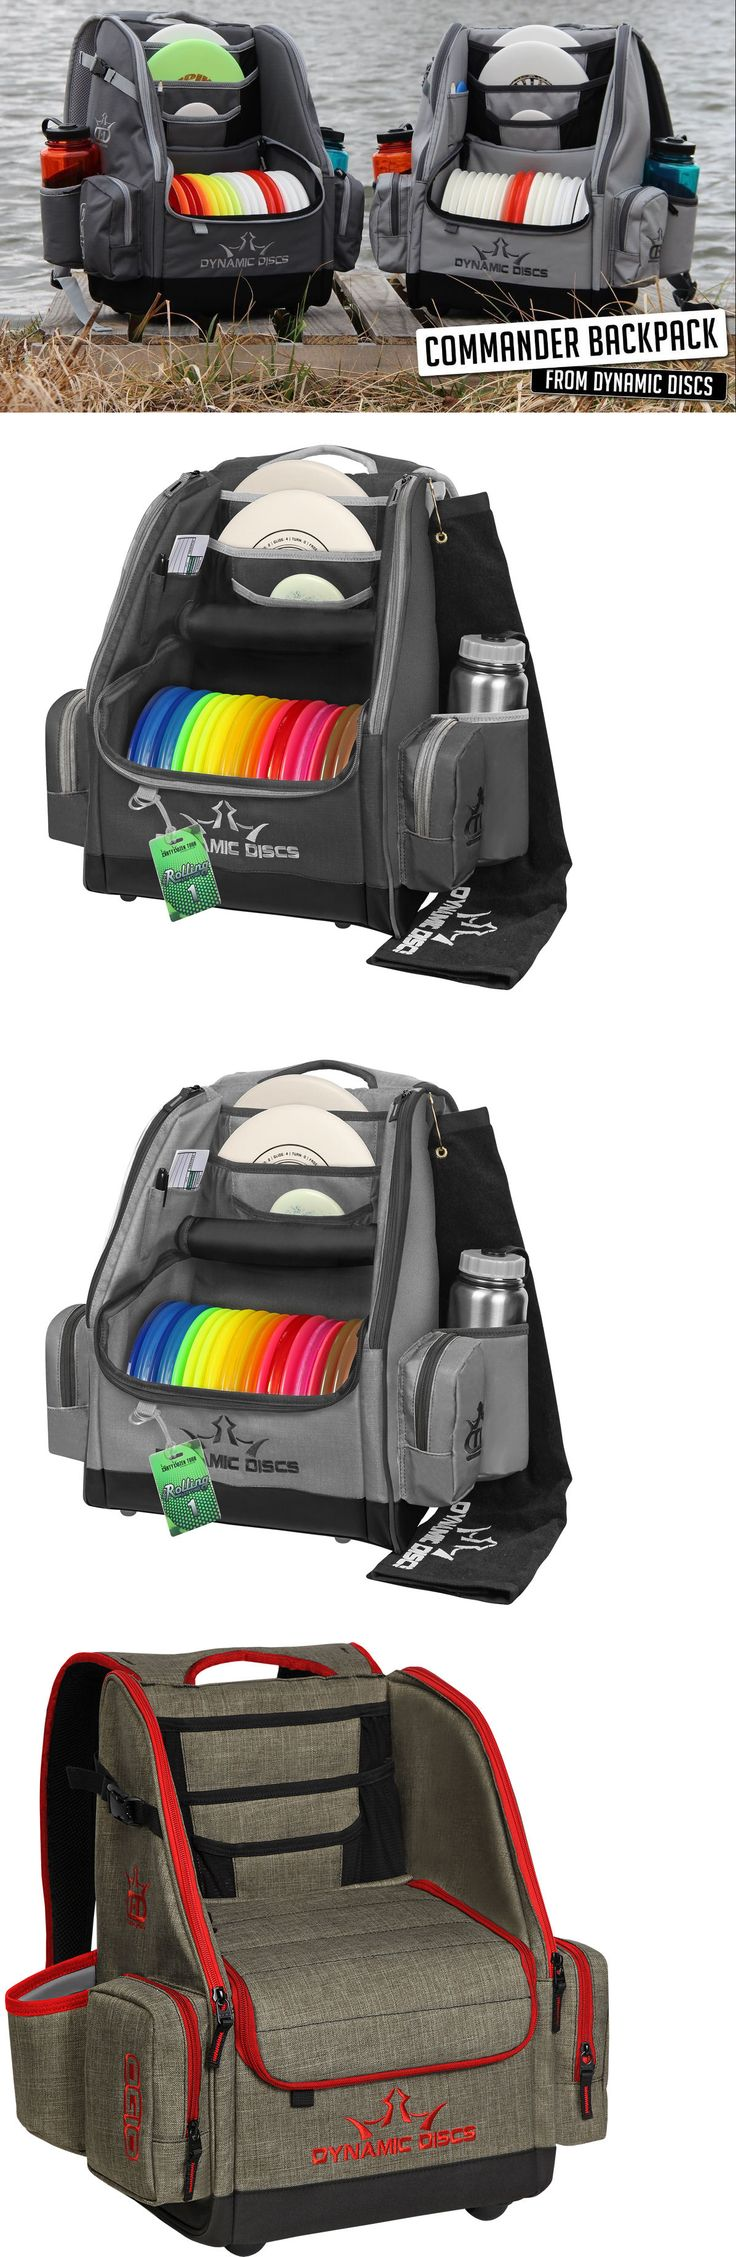 Disc Golf 20851: New Dynamic Discs Commander Backpack Disc Golf Bag -> BUY IT NOW ONLY: $129.95 on eBay!